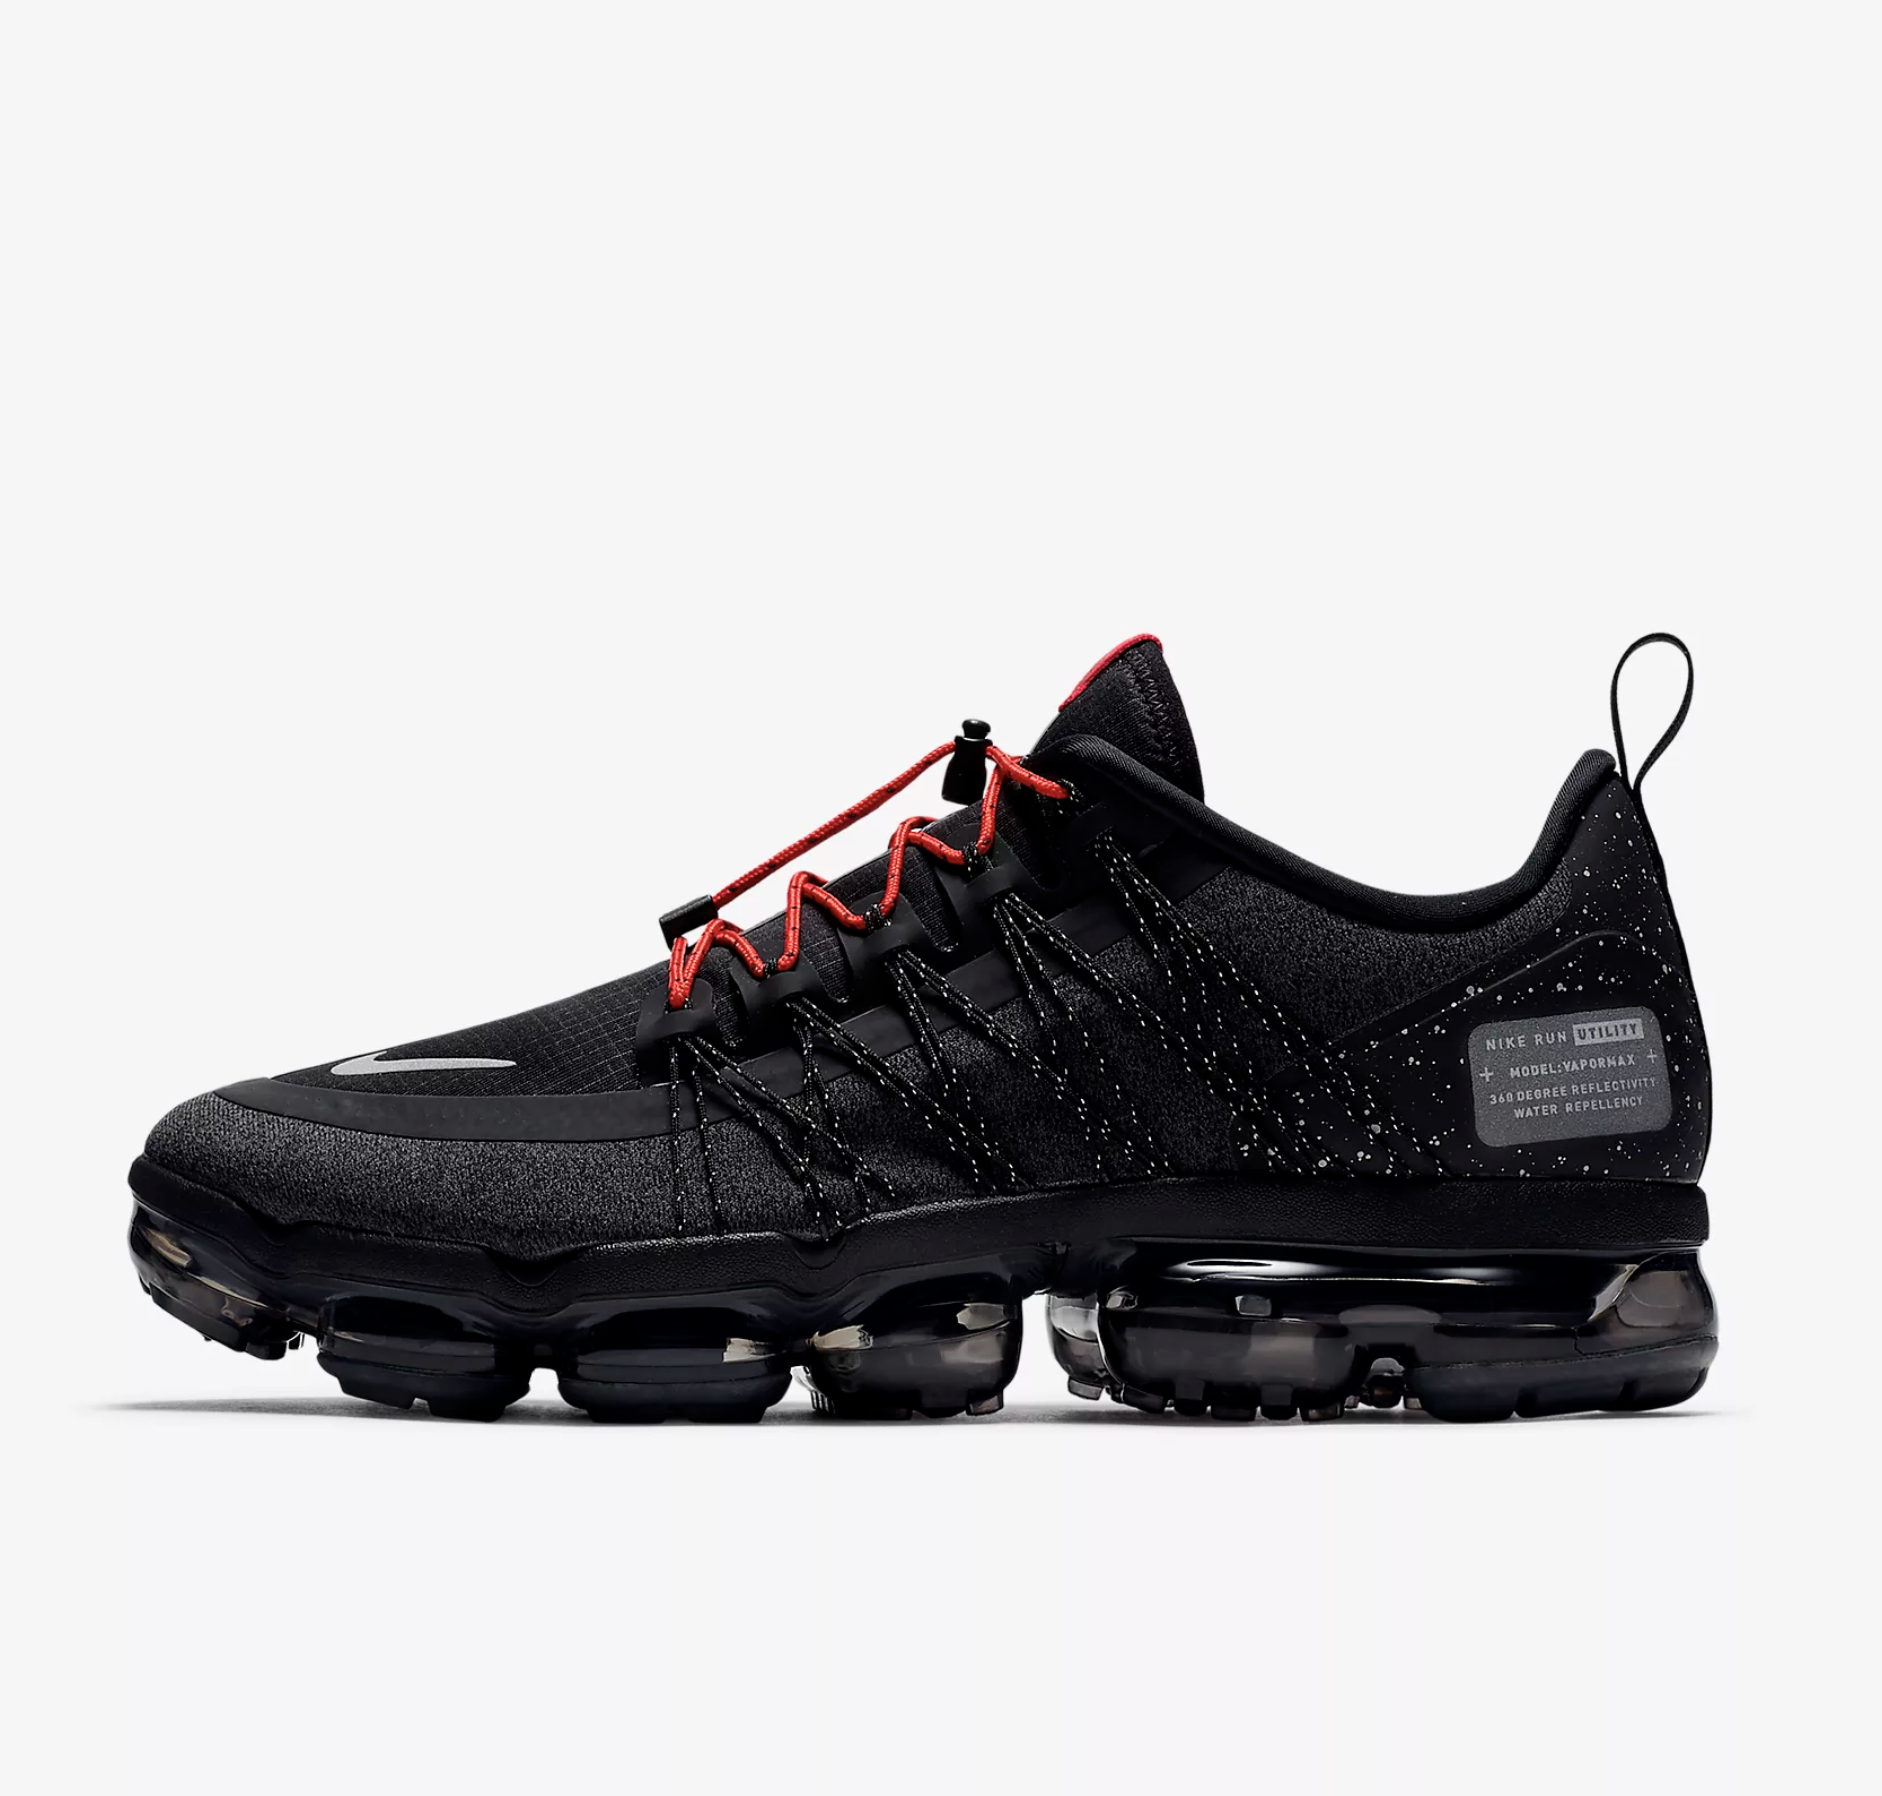 SNEAKERS - A good sneaker is a staple gift. Pick him up the new Nike Air VaporMax Run Utility for $190.